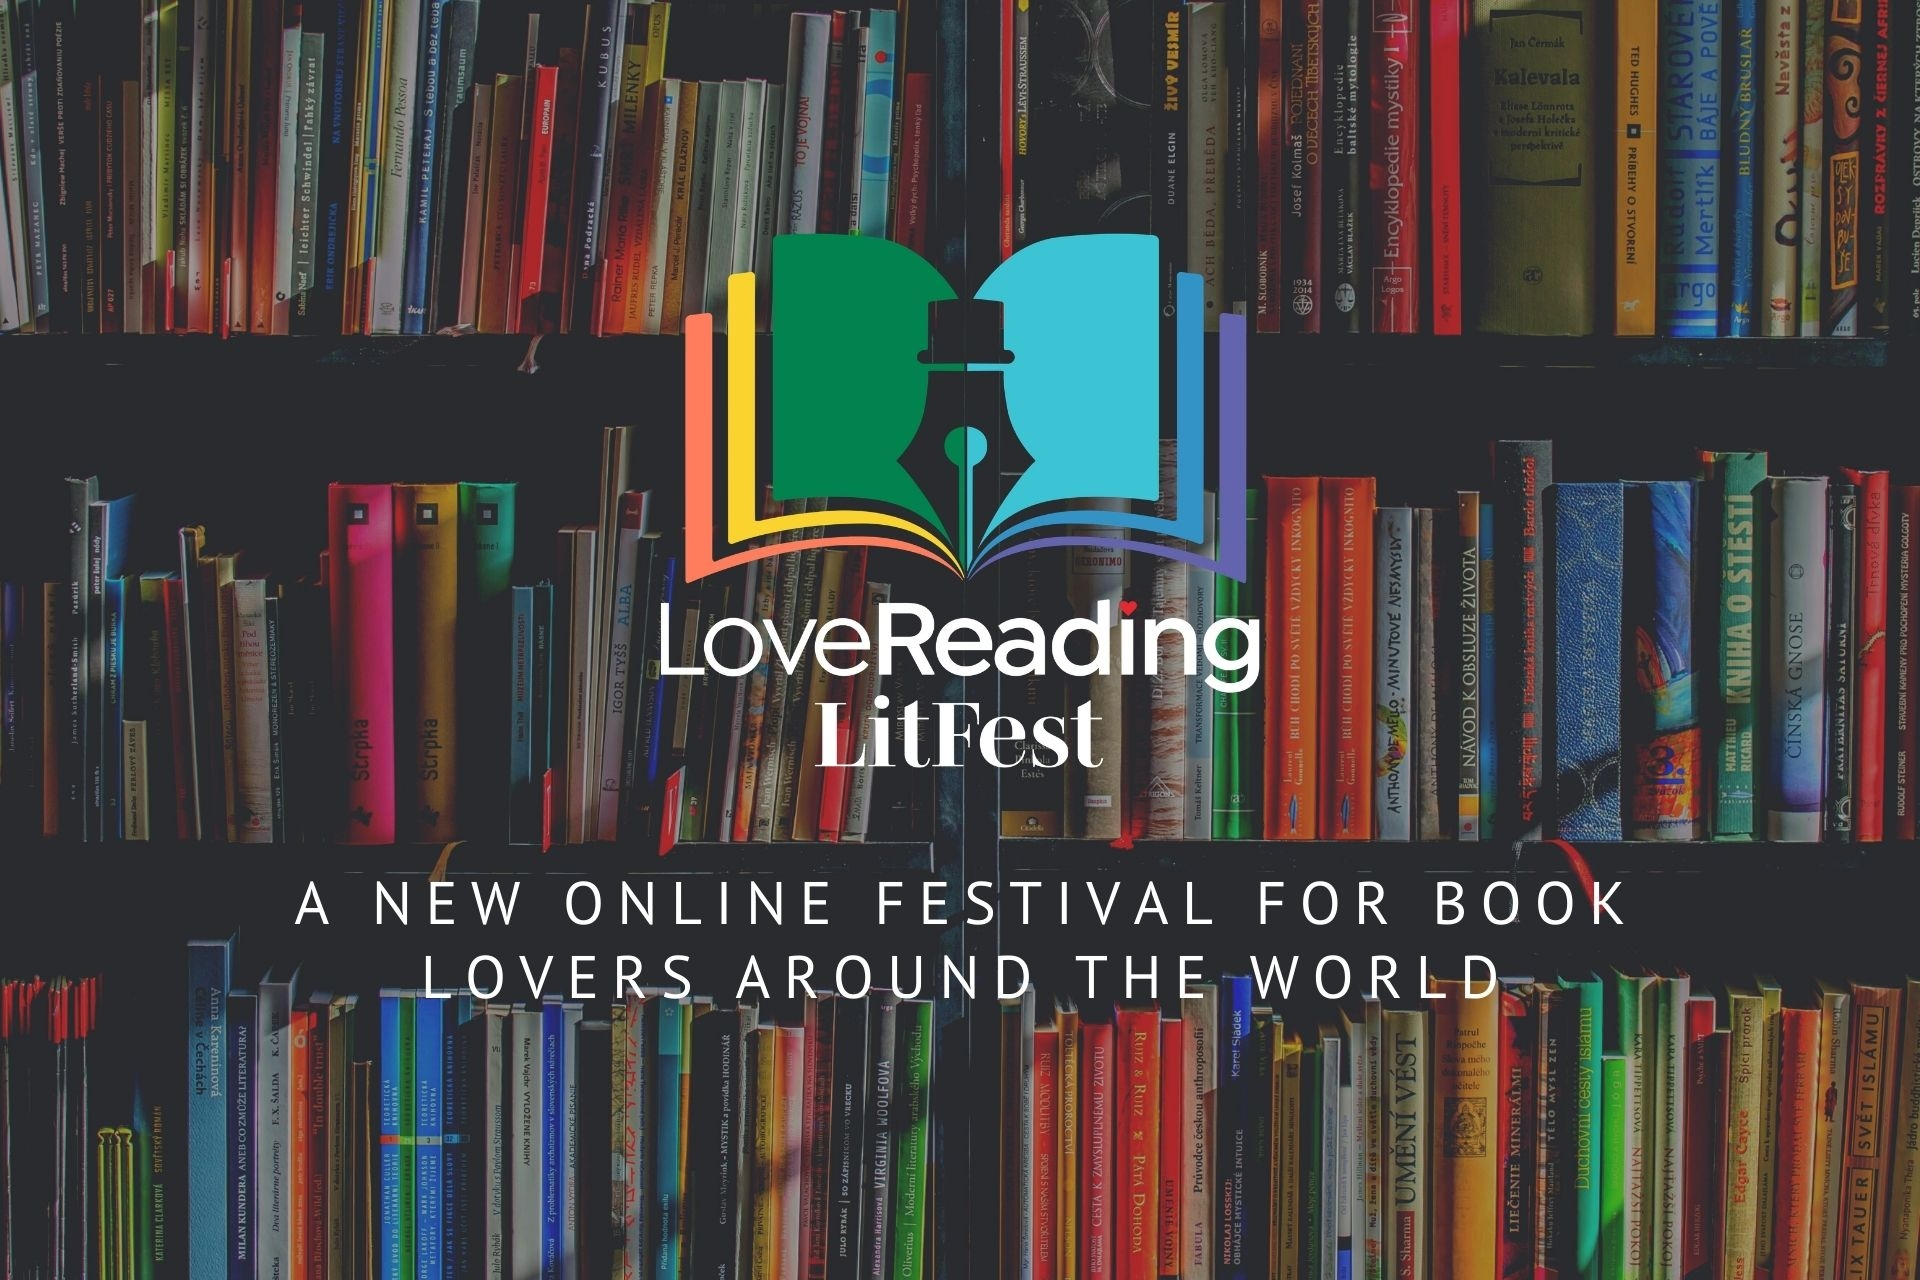 LoveReading LitFest - a New Online Festival for Book Lovers Around the World - Launches Today